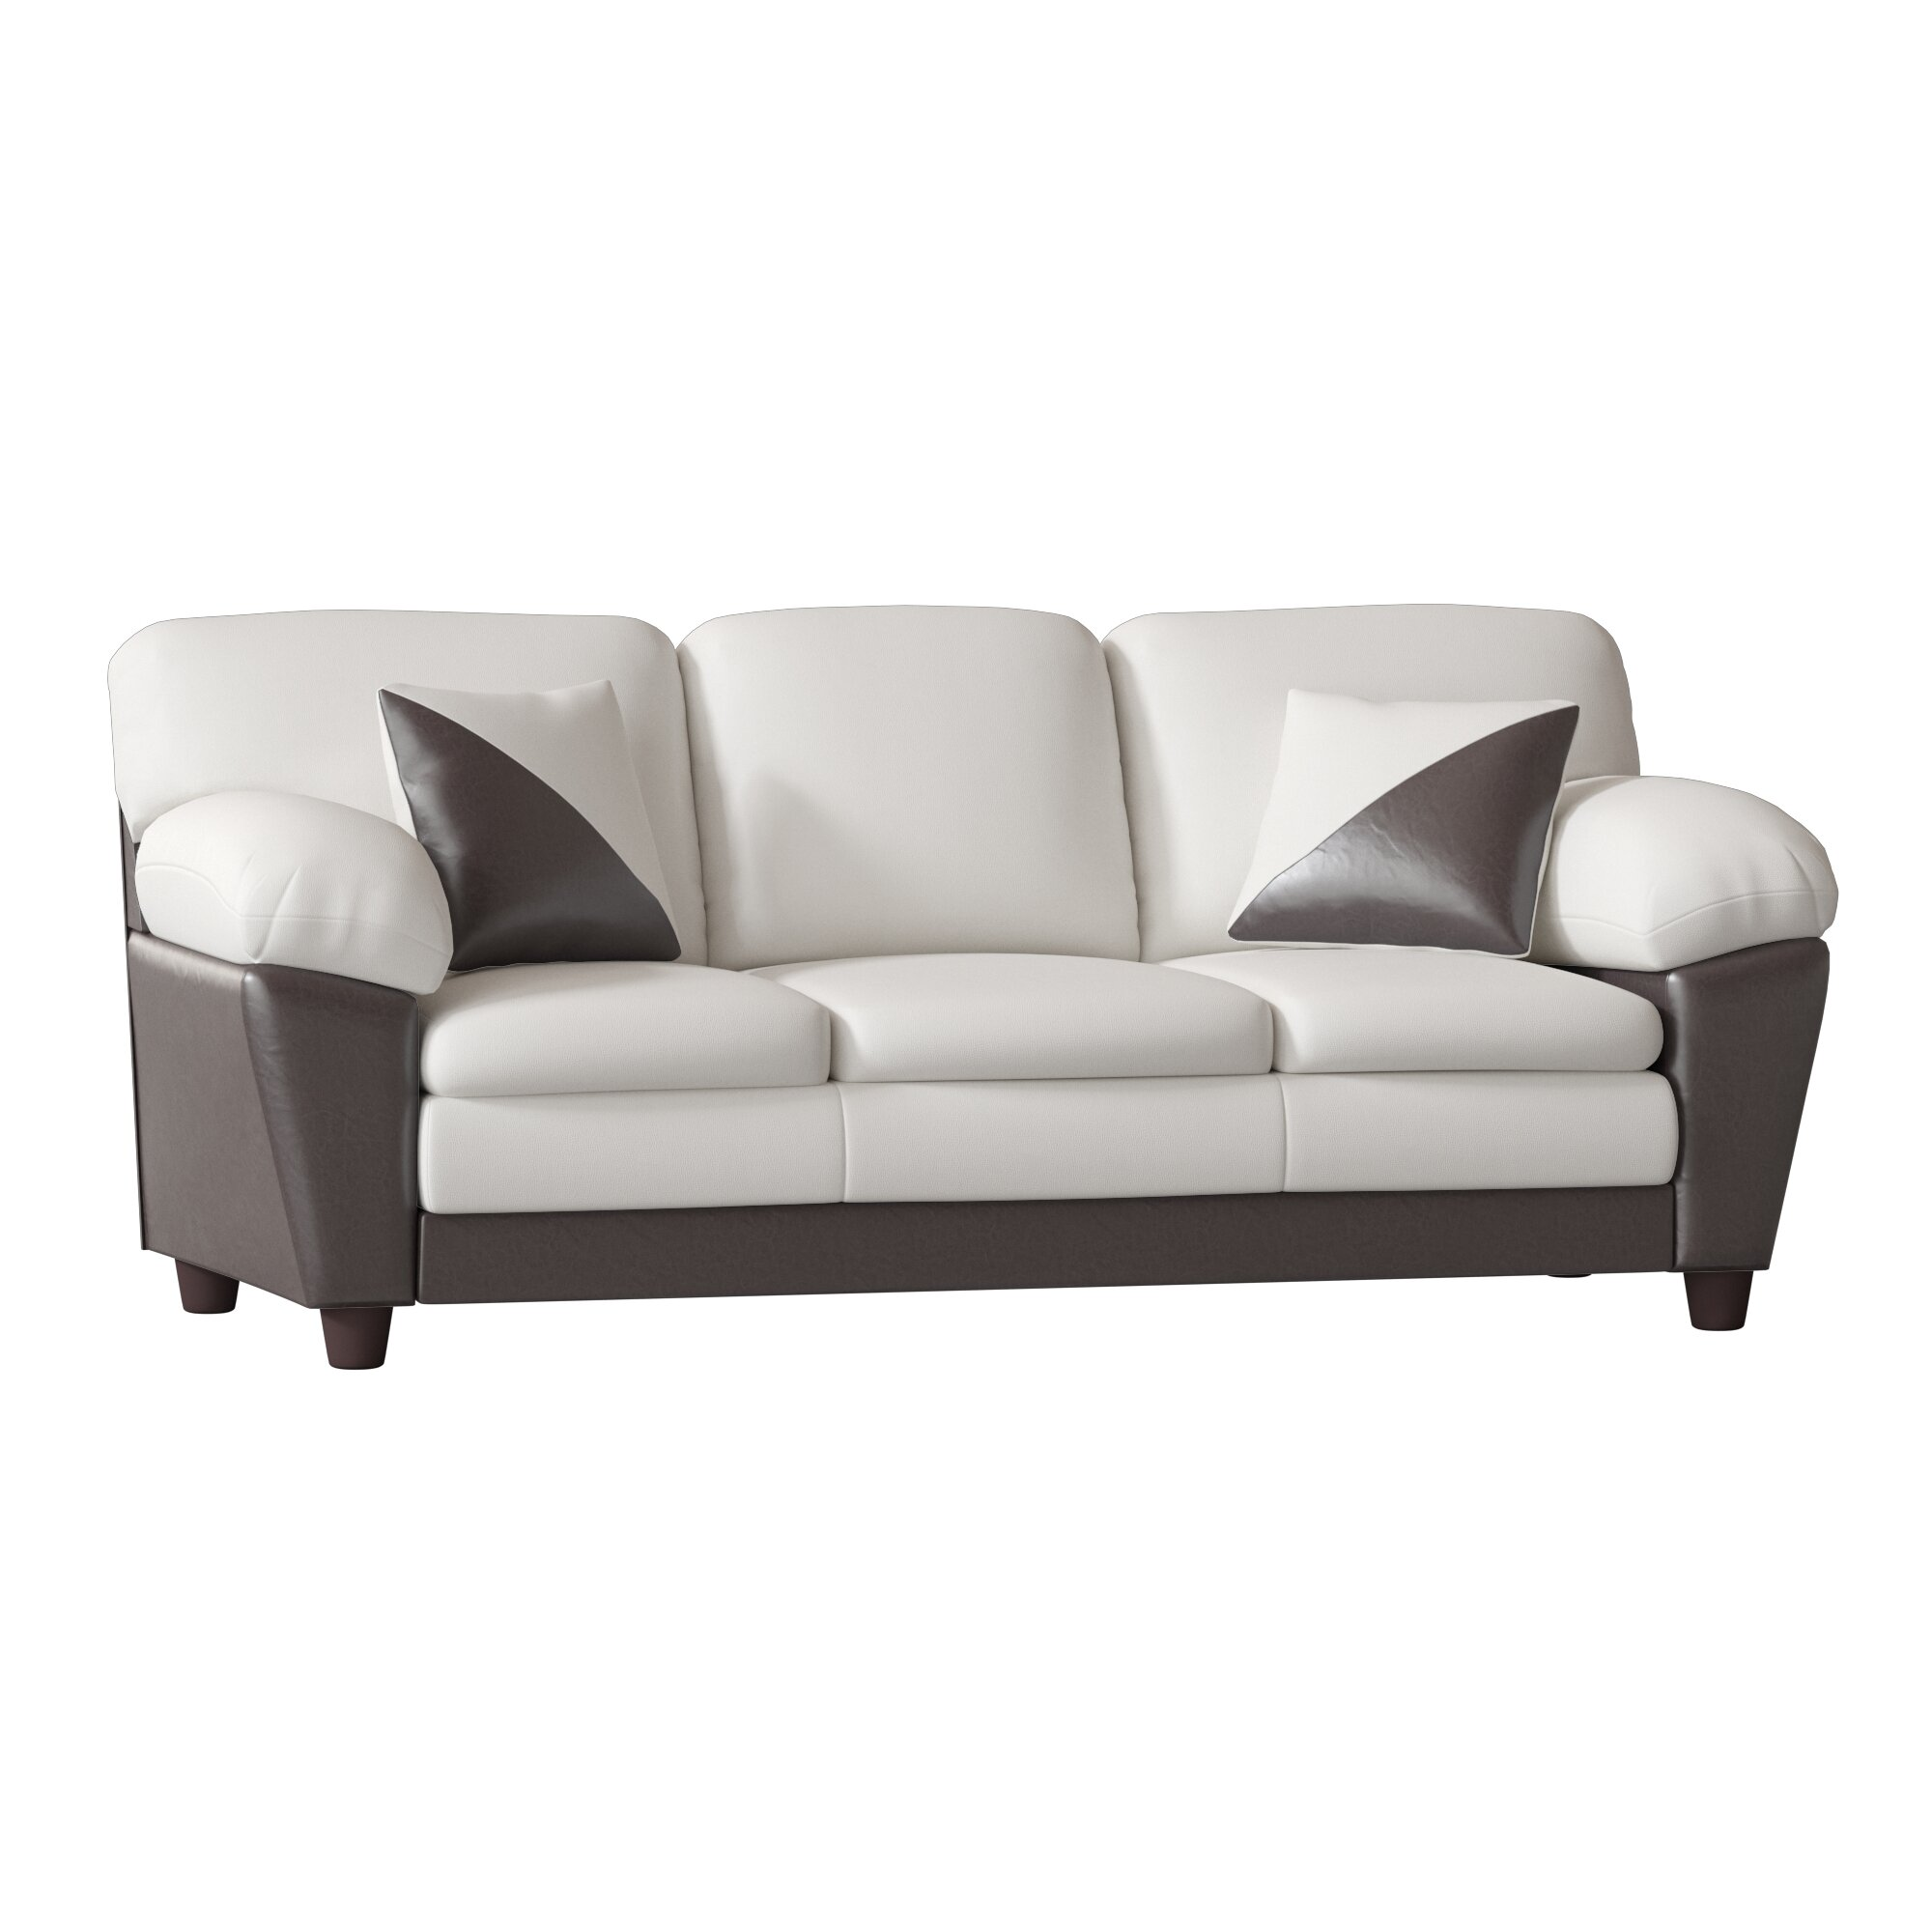 Attirant Piedmont Furniture Brooklyn Sofa | Wayfair